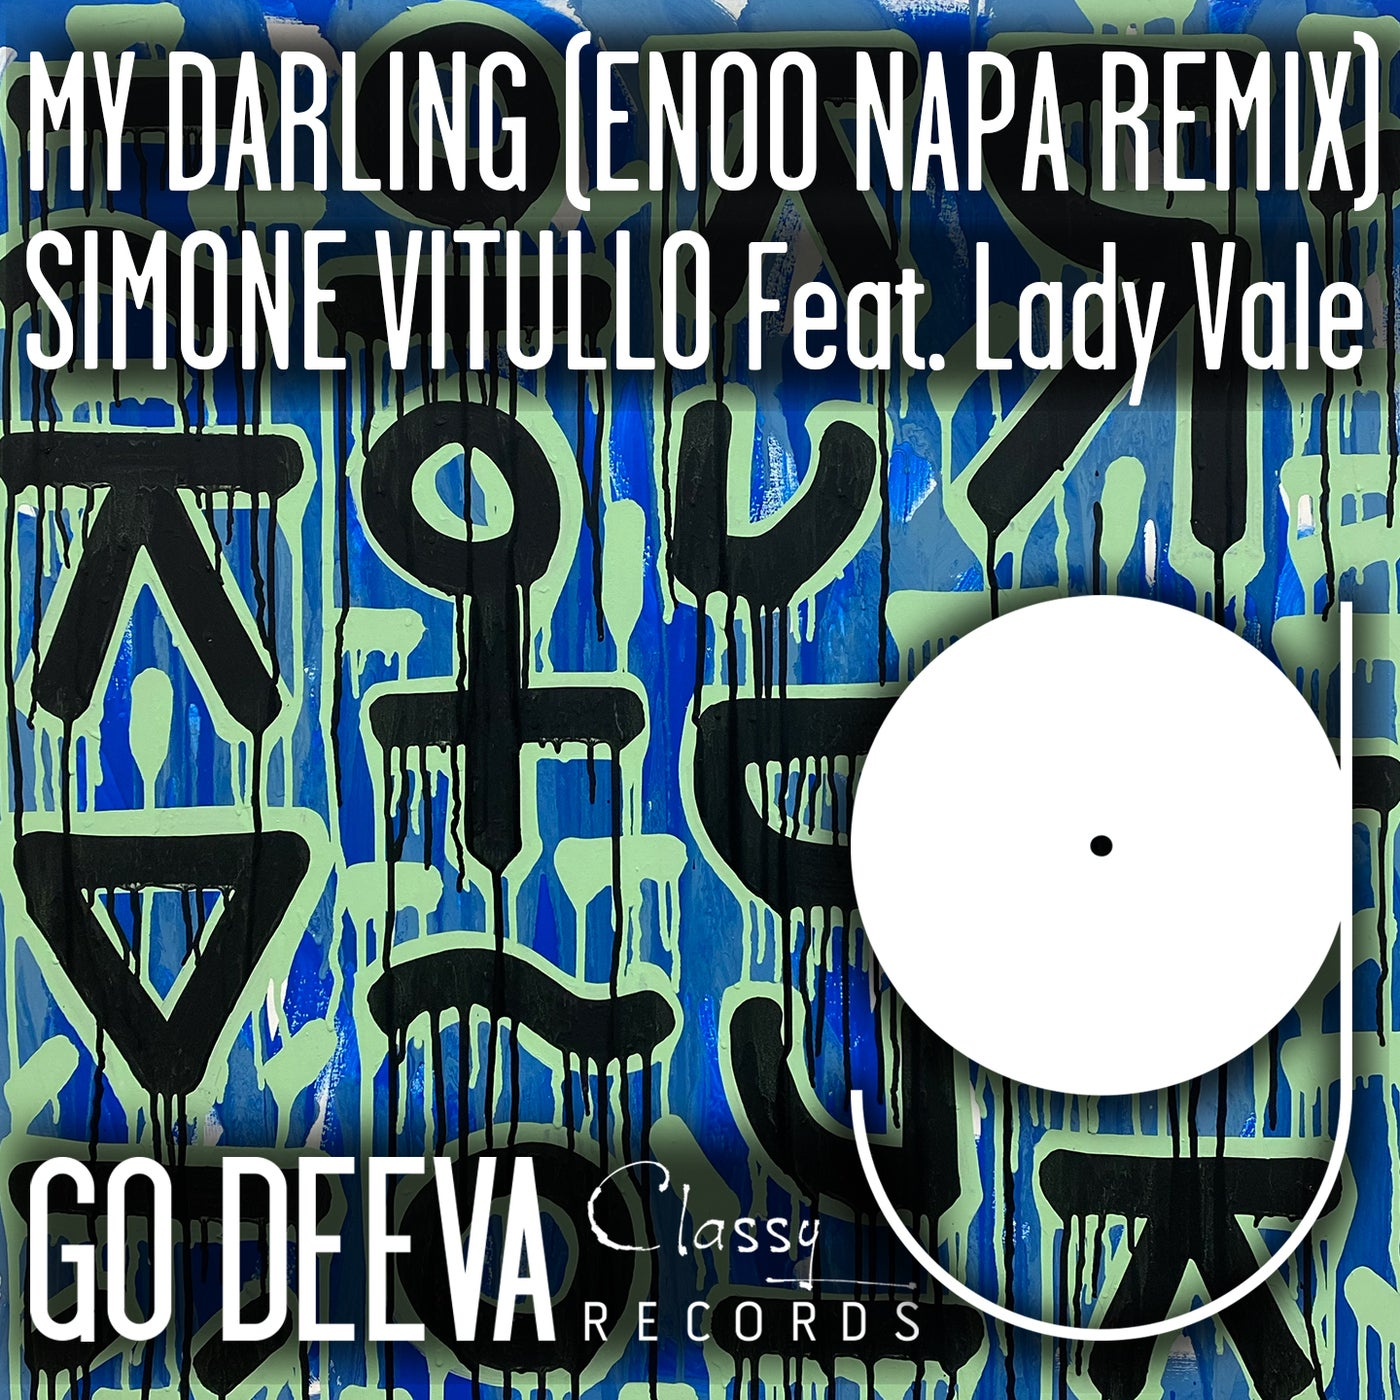 My Darling Feat. Lady Vale (Enoo Napa Extended Remix)